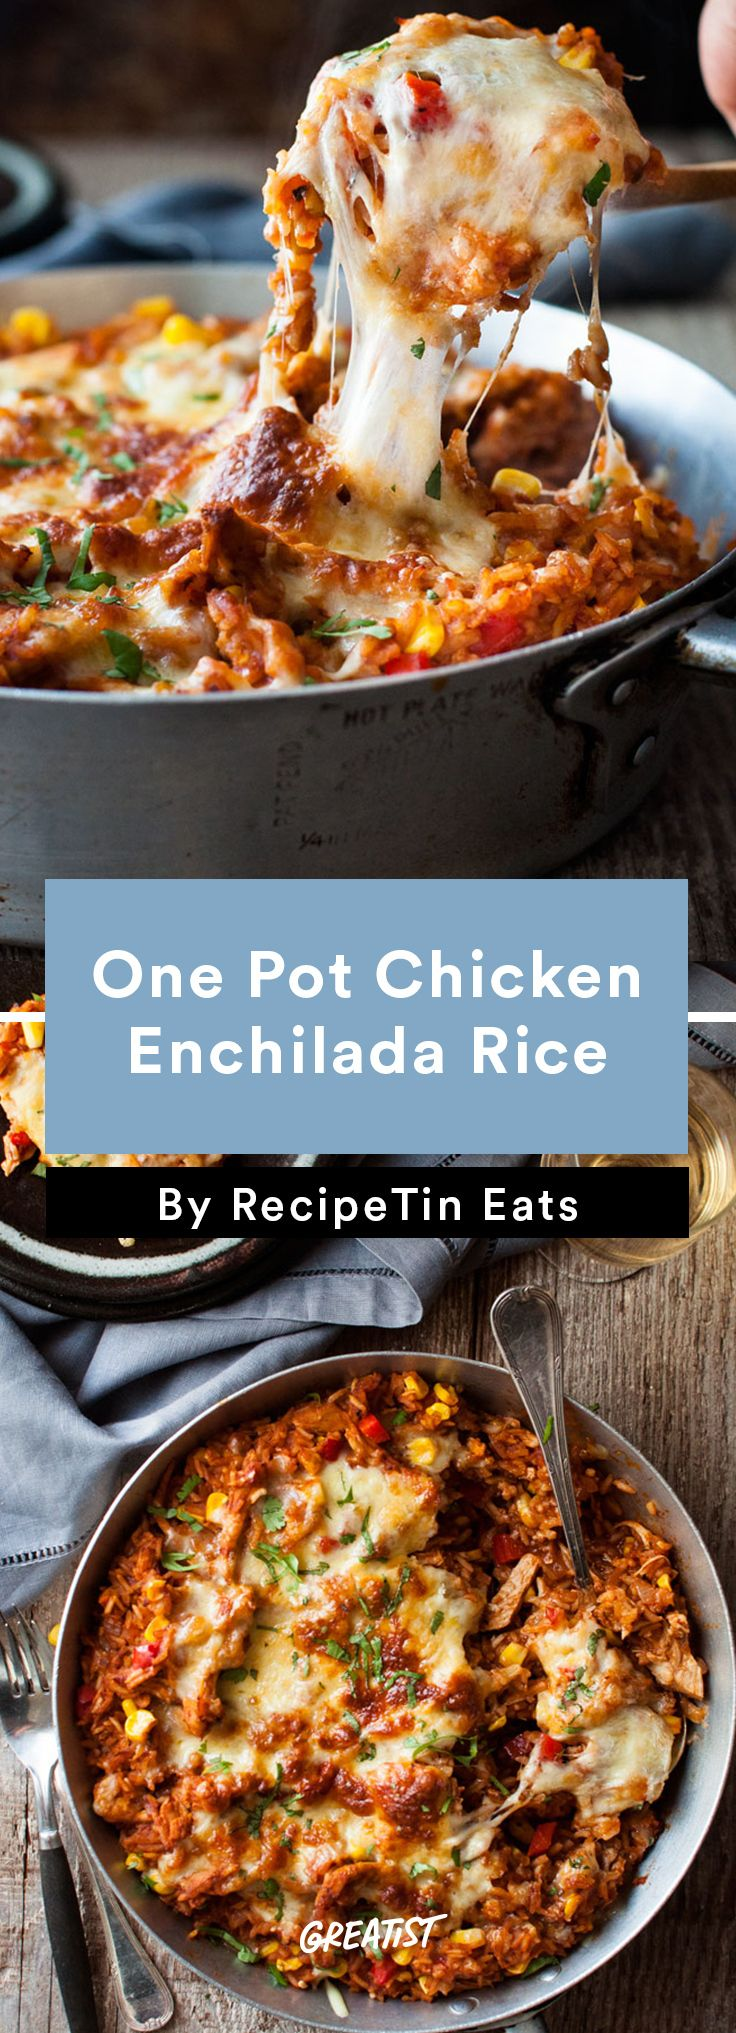 6. Chicken Enchilada Rice #healthy #chicken #recipes http://greatist.com/eat/easy-chicken-recipes-one-dish-dinner-ideas                                                                                                                                                                                 More